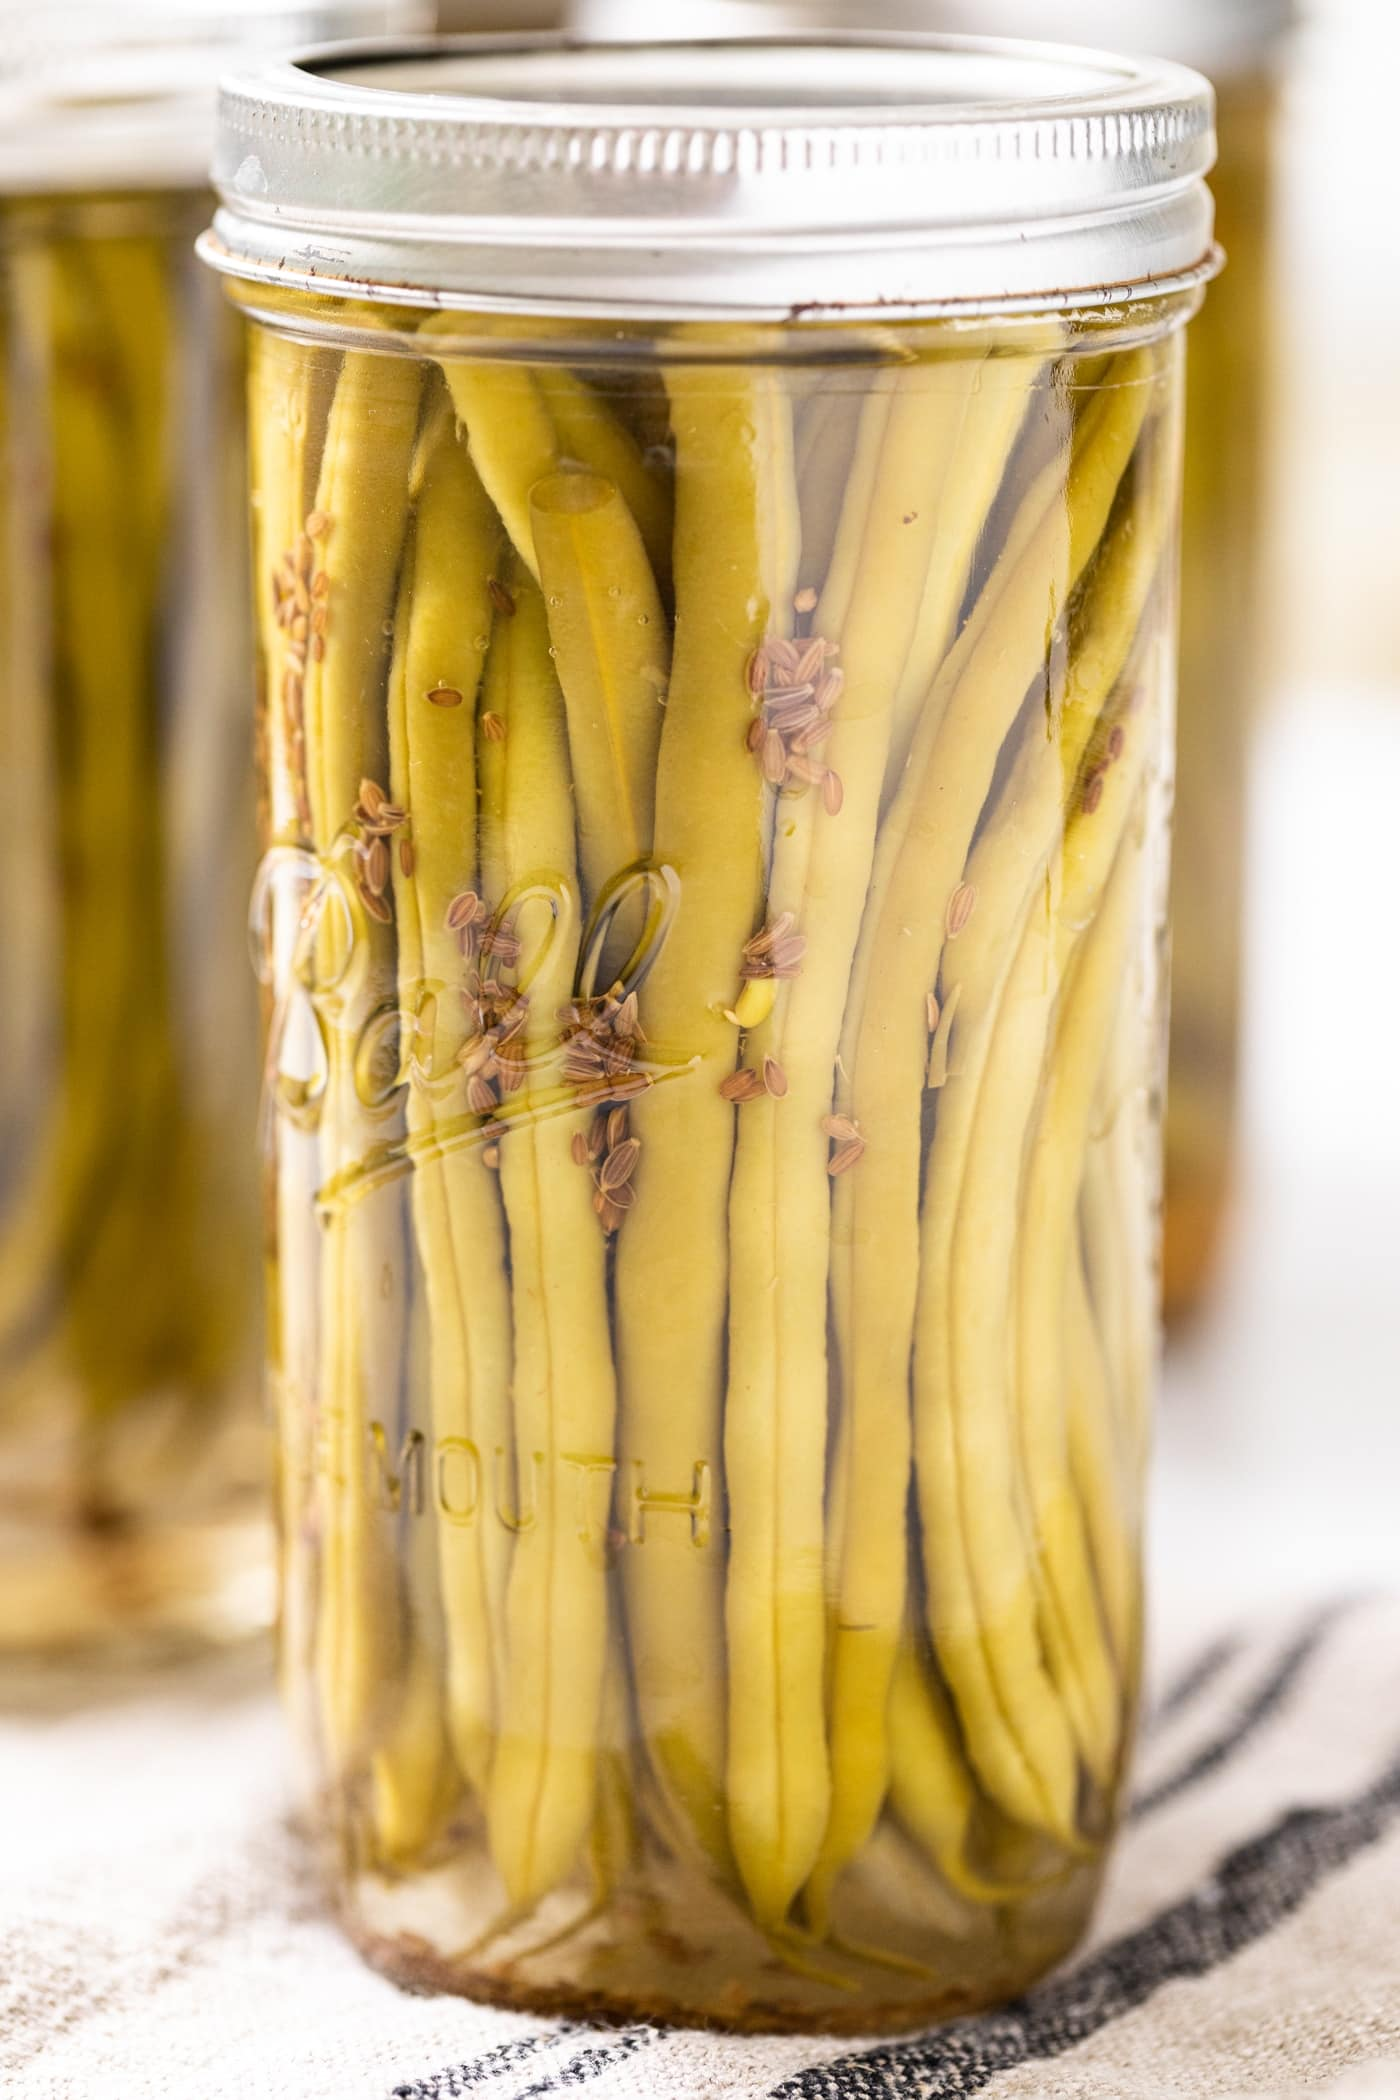 Close up view of glass canning jar filled with green beans with dill seeds floating down the side toward the bottom of the jar